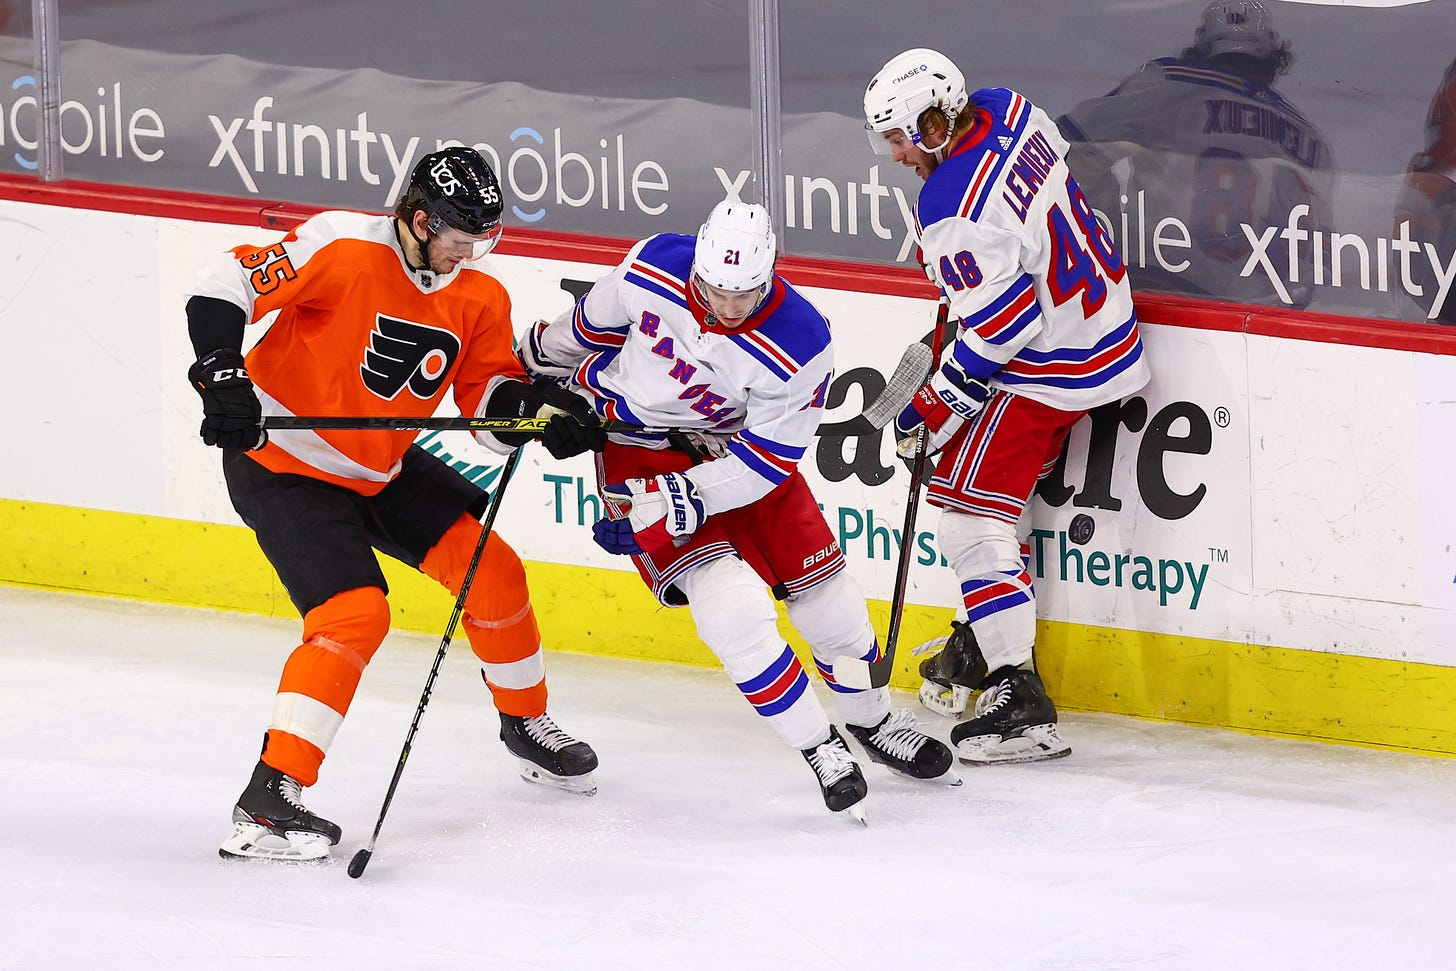 Flyers vs. Rangers: Projected lines, odds & trends, and what to watch for